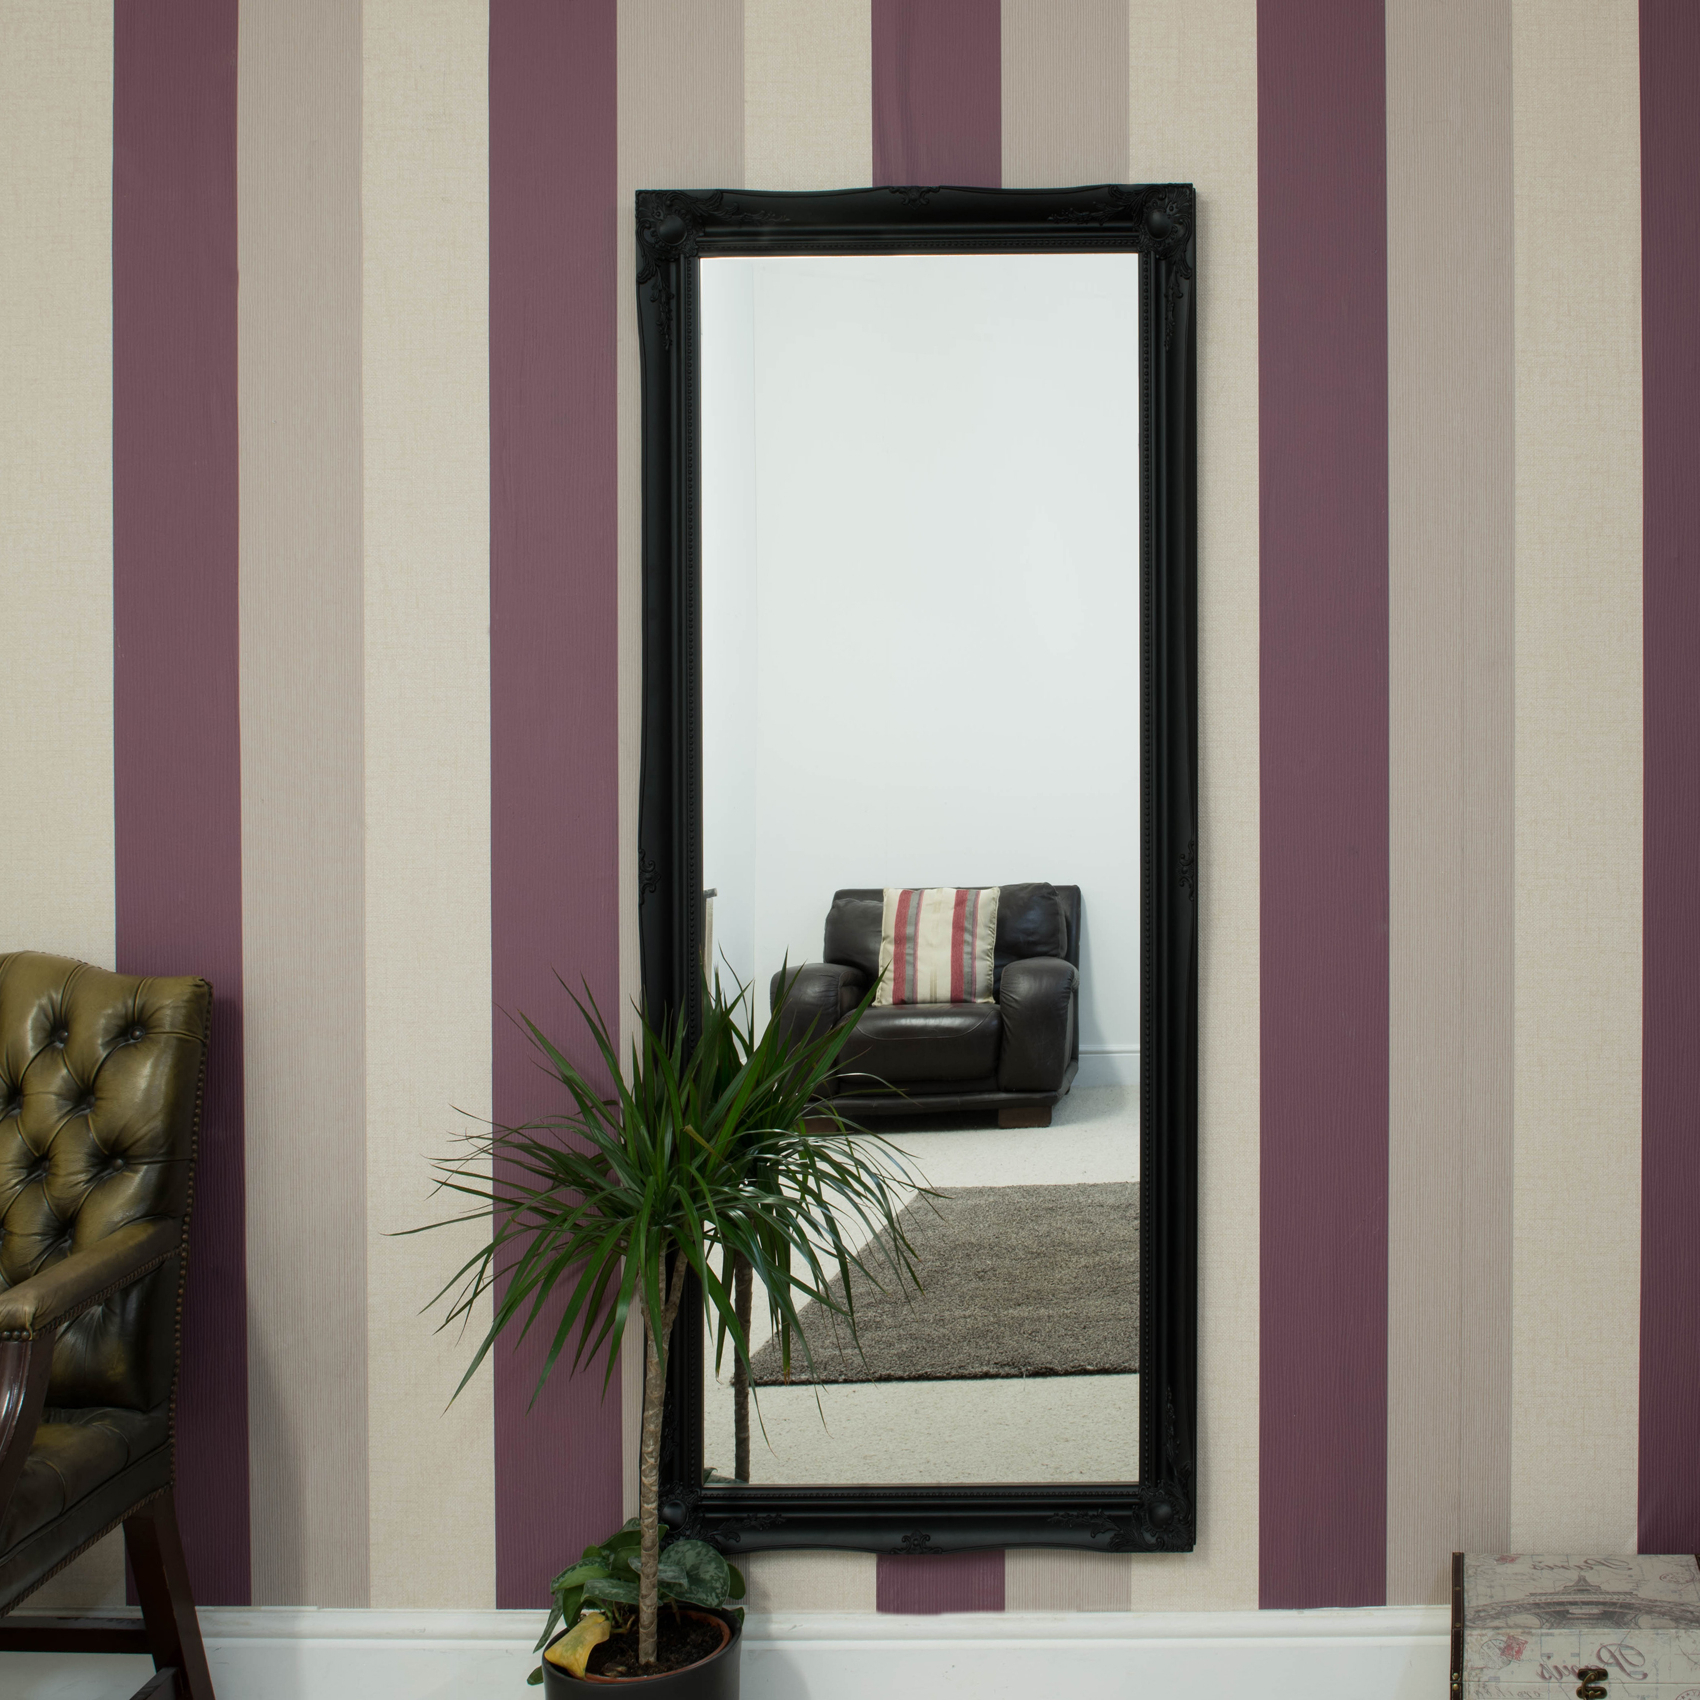 Famous Details About Large Black Shabby Chic Full Length Big Wall Mirror 5ft6 X 2ft6 165cm X 75cm Throughout Big Size Wall Mirrors (View 19 of 20)